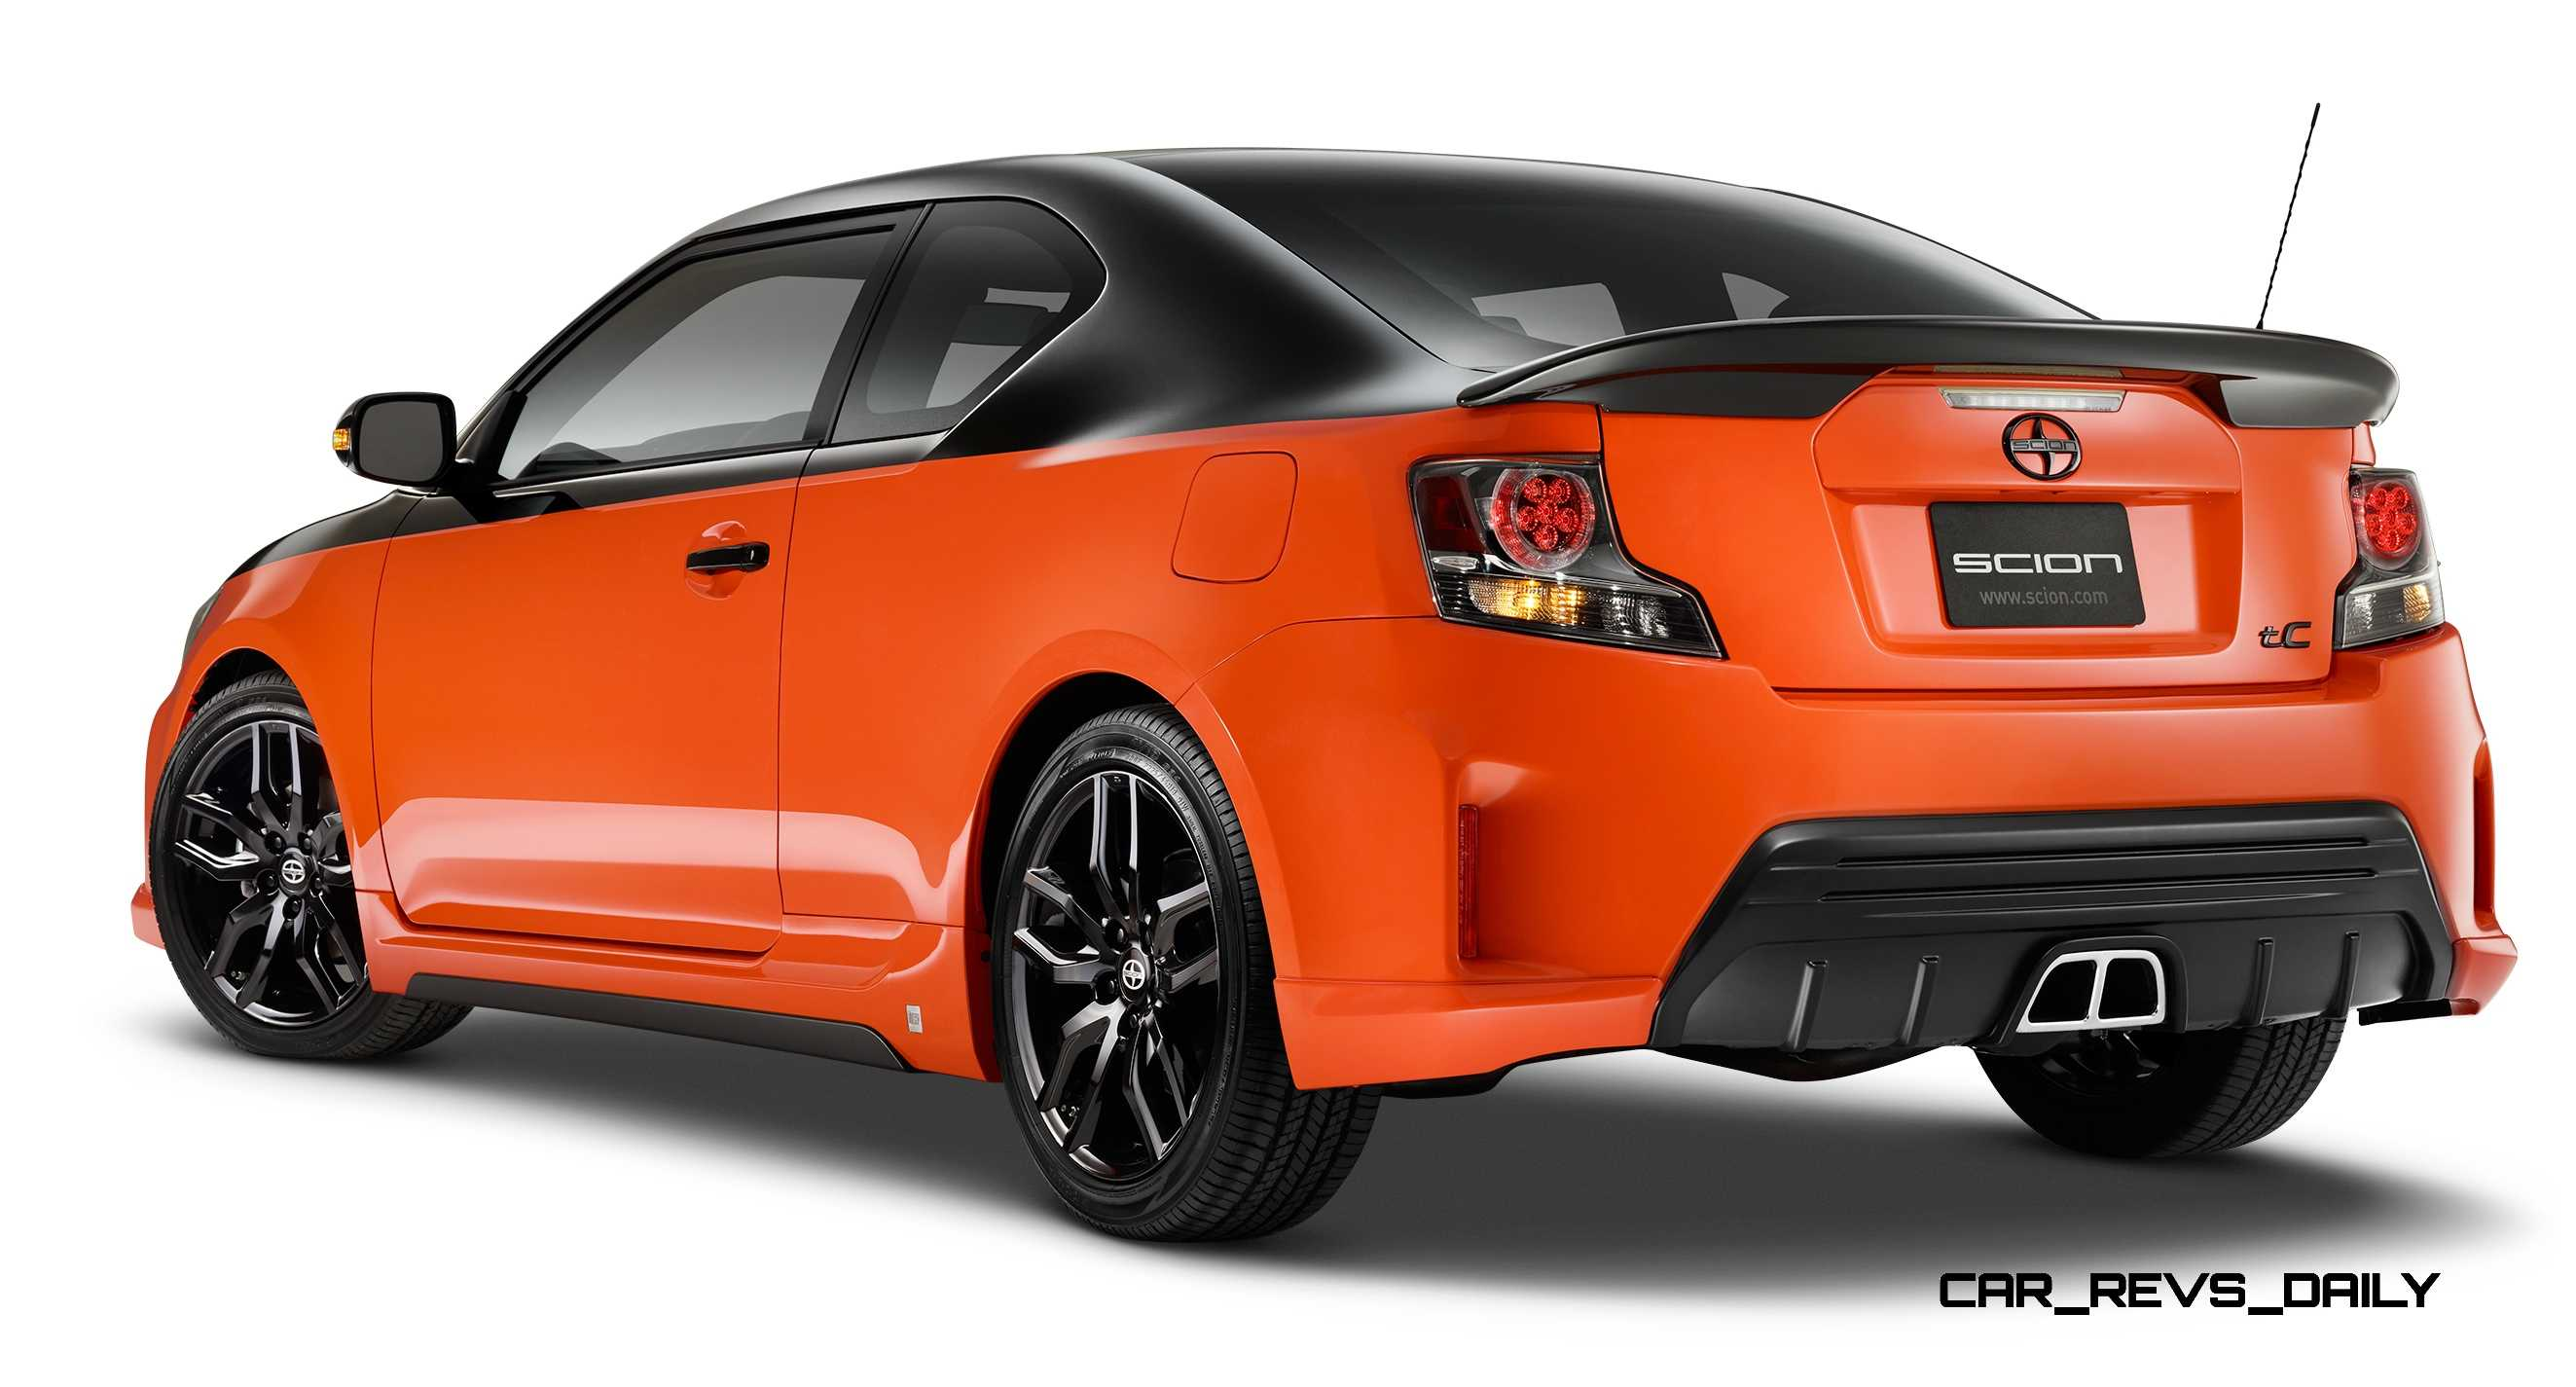 2015 scion tc release series 9 0 brings showcar style to showrooms from 24k. Black Bedroom Furniture Sets. Home Design Ideas